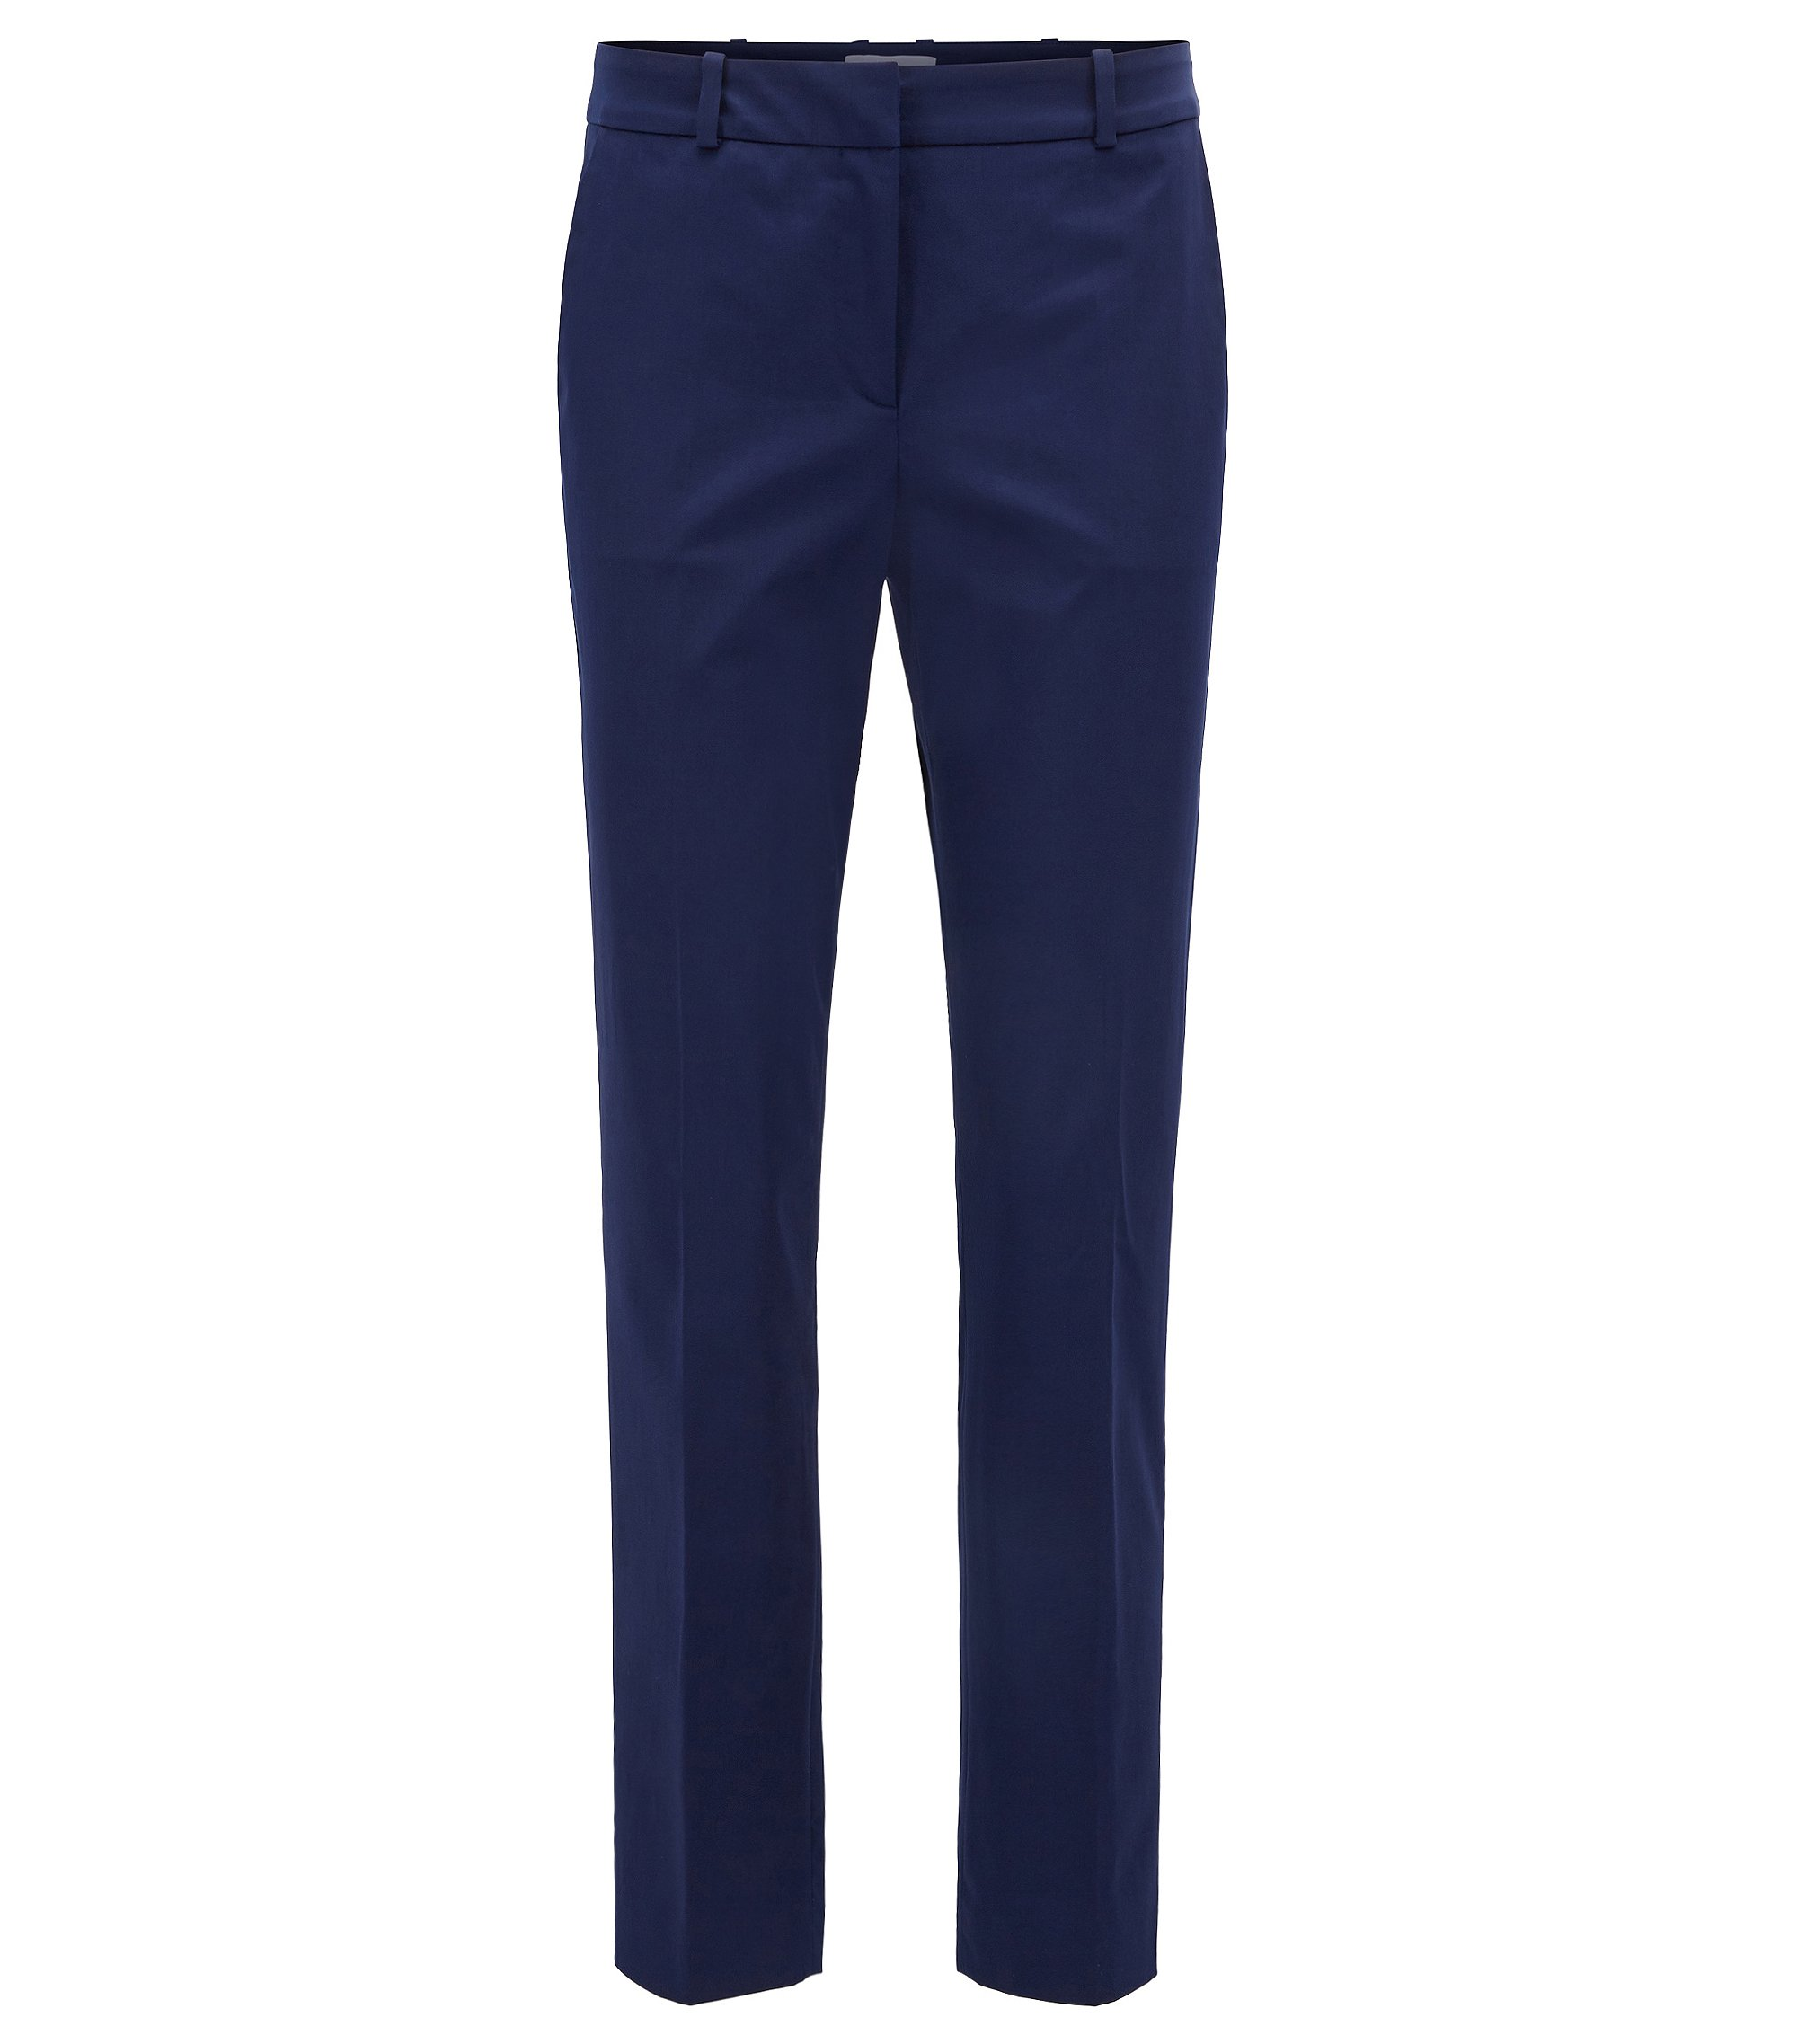 Pantalon raccourci Relaxed Fit en coton stretch, Bleu